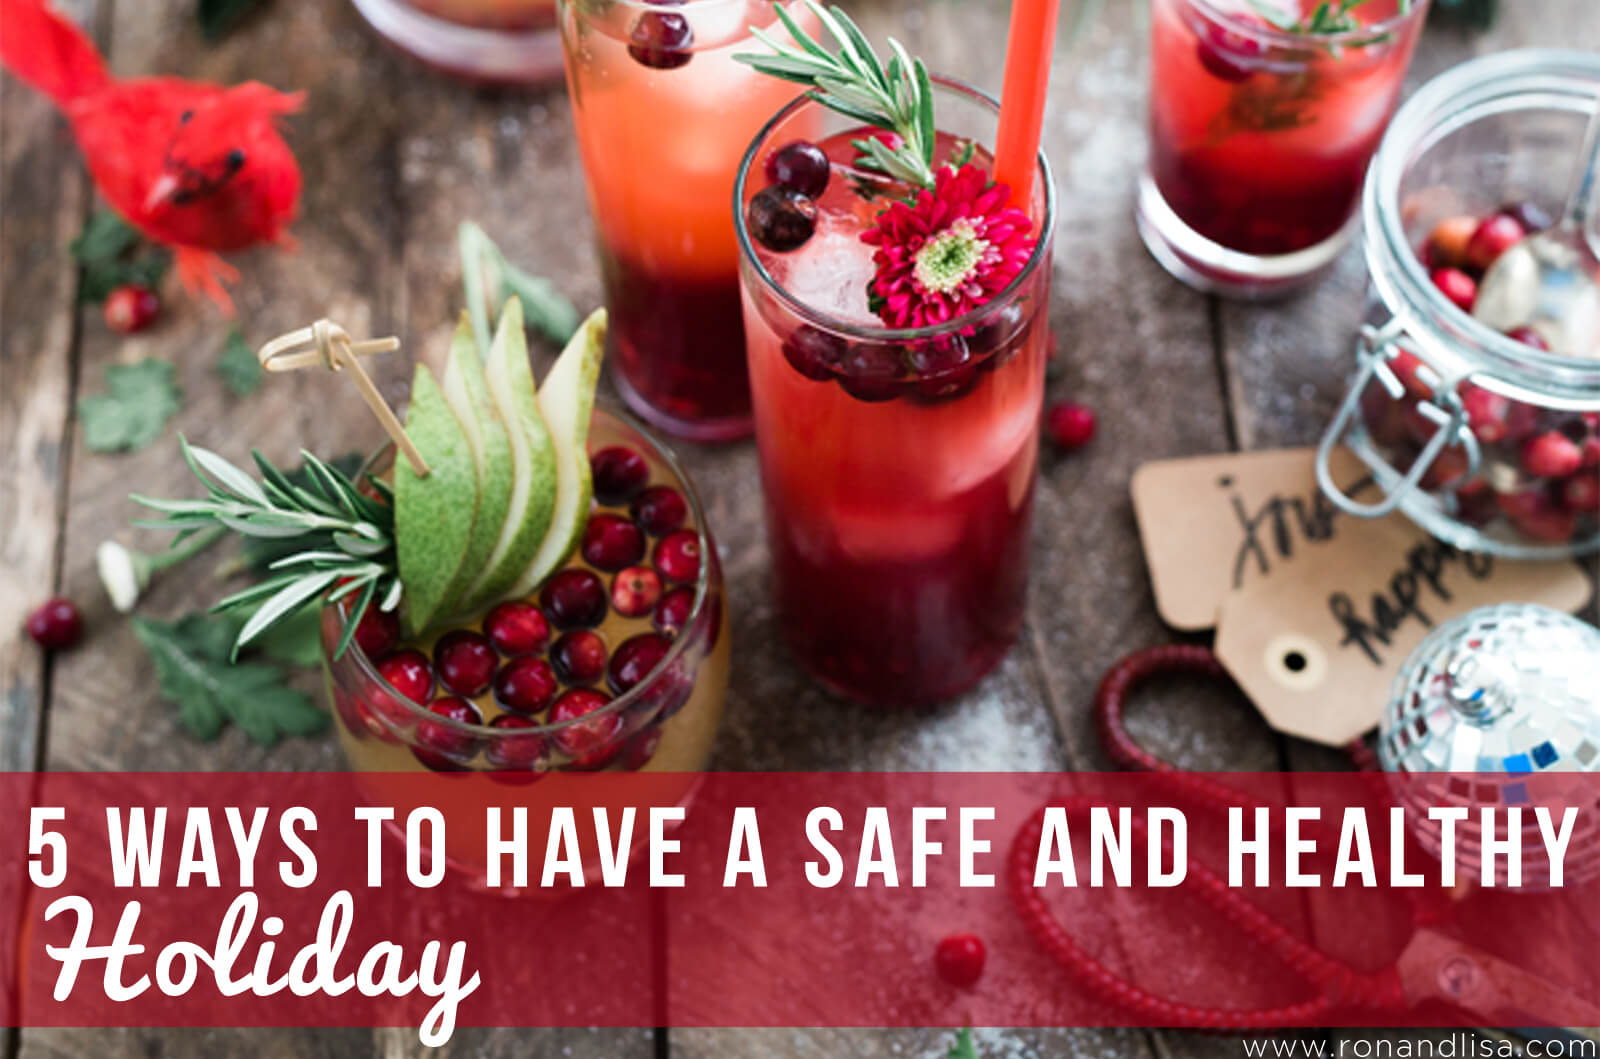 5 Ways to Have a Safe and Healthy Holiday